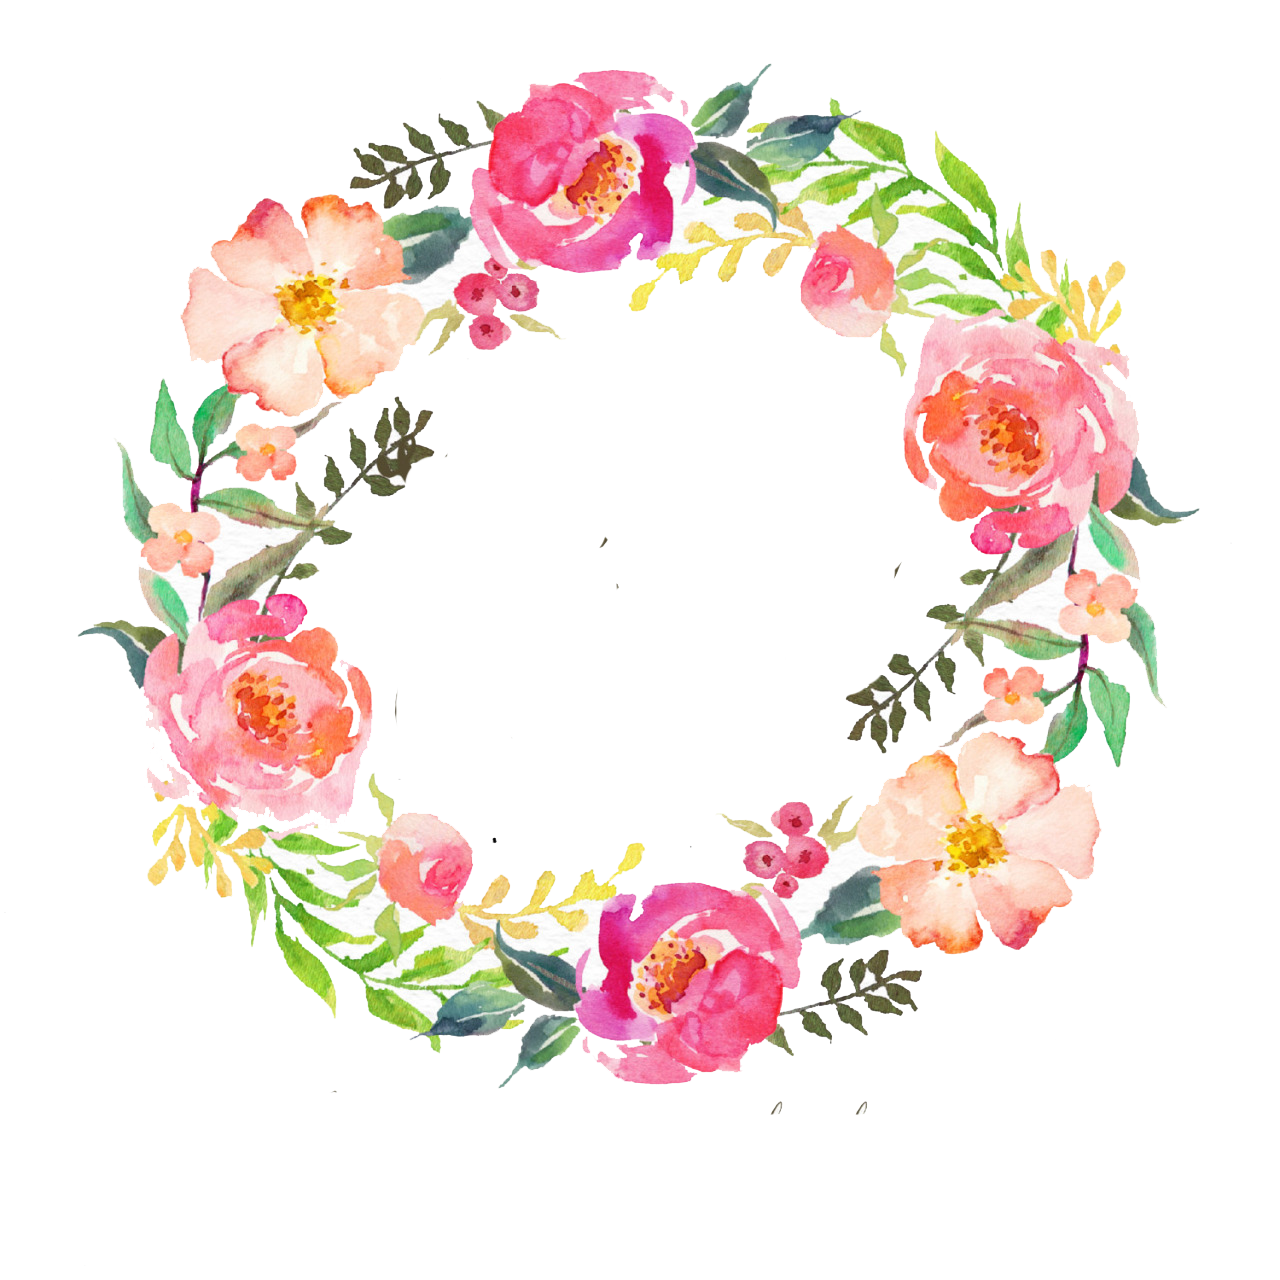 Watercolour Flowers Wreath Watercolor painting Garland.